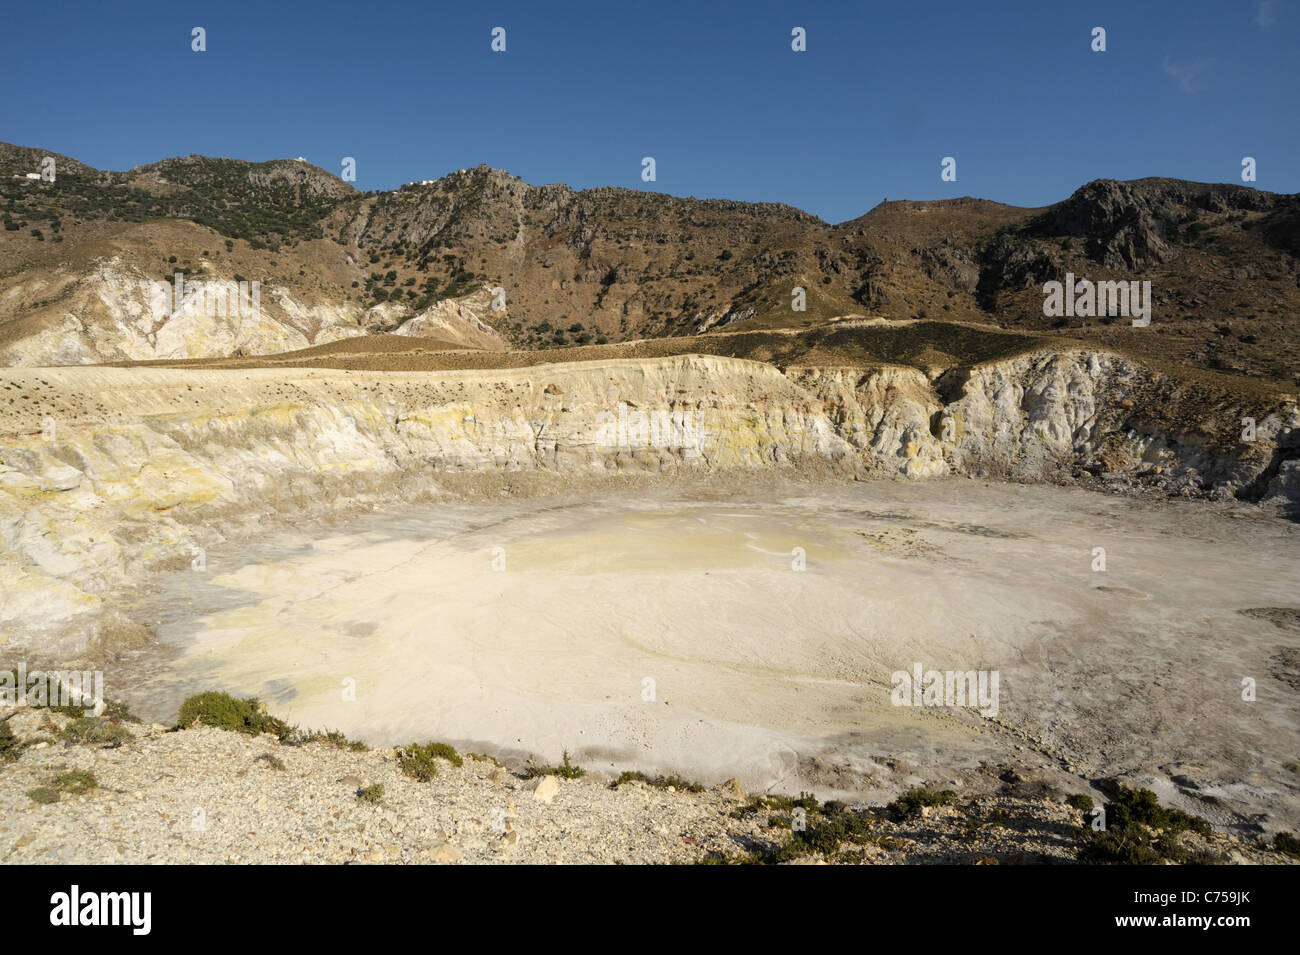 Caldera of Stephanos volcano with its fumaroles on Nisyros in the Aegean Greek Islands - Stock Image